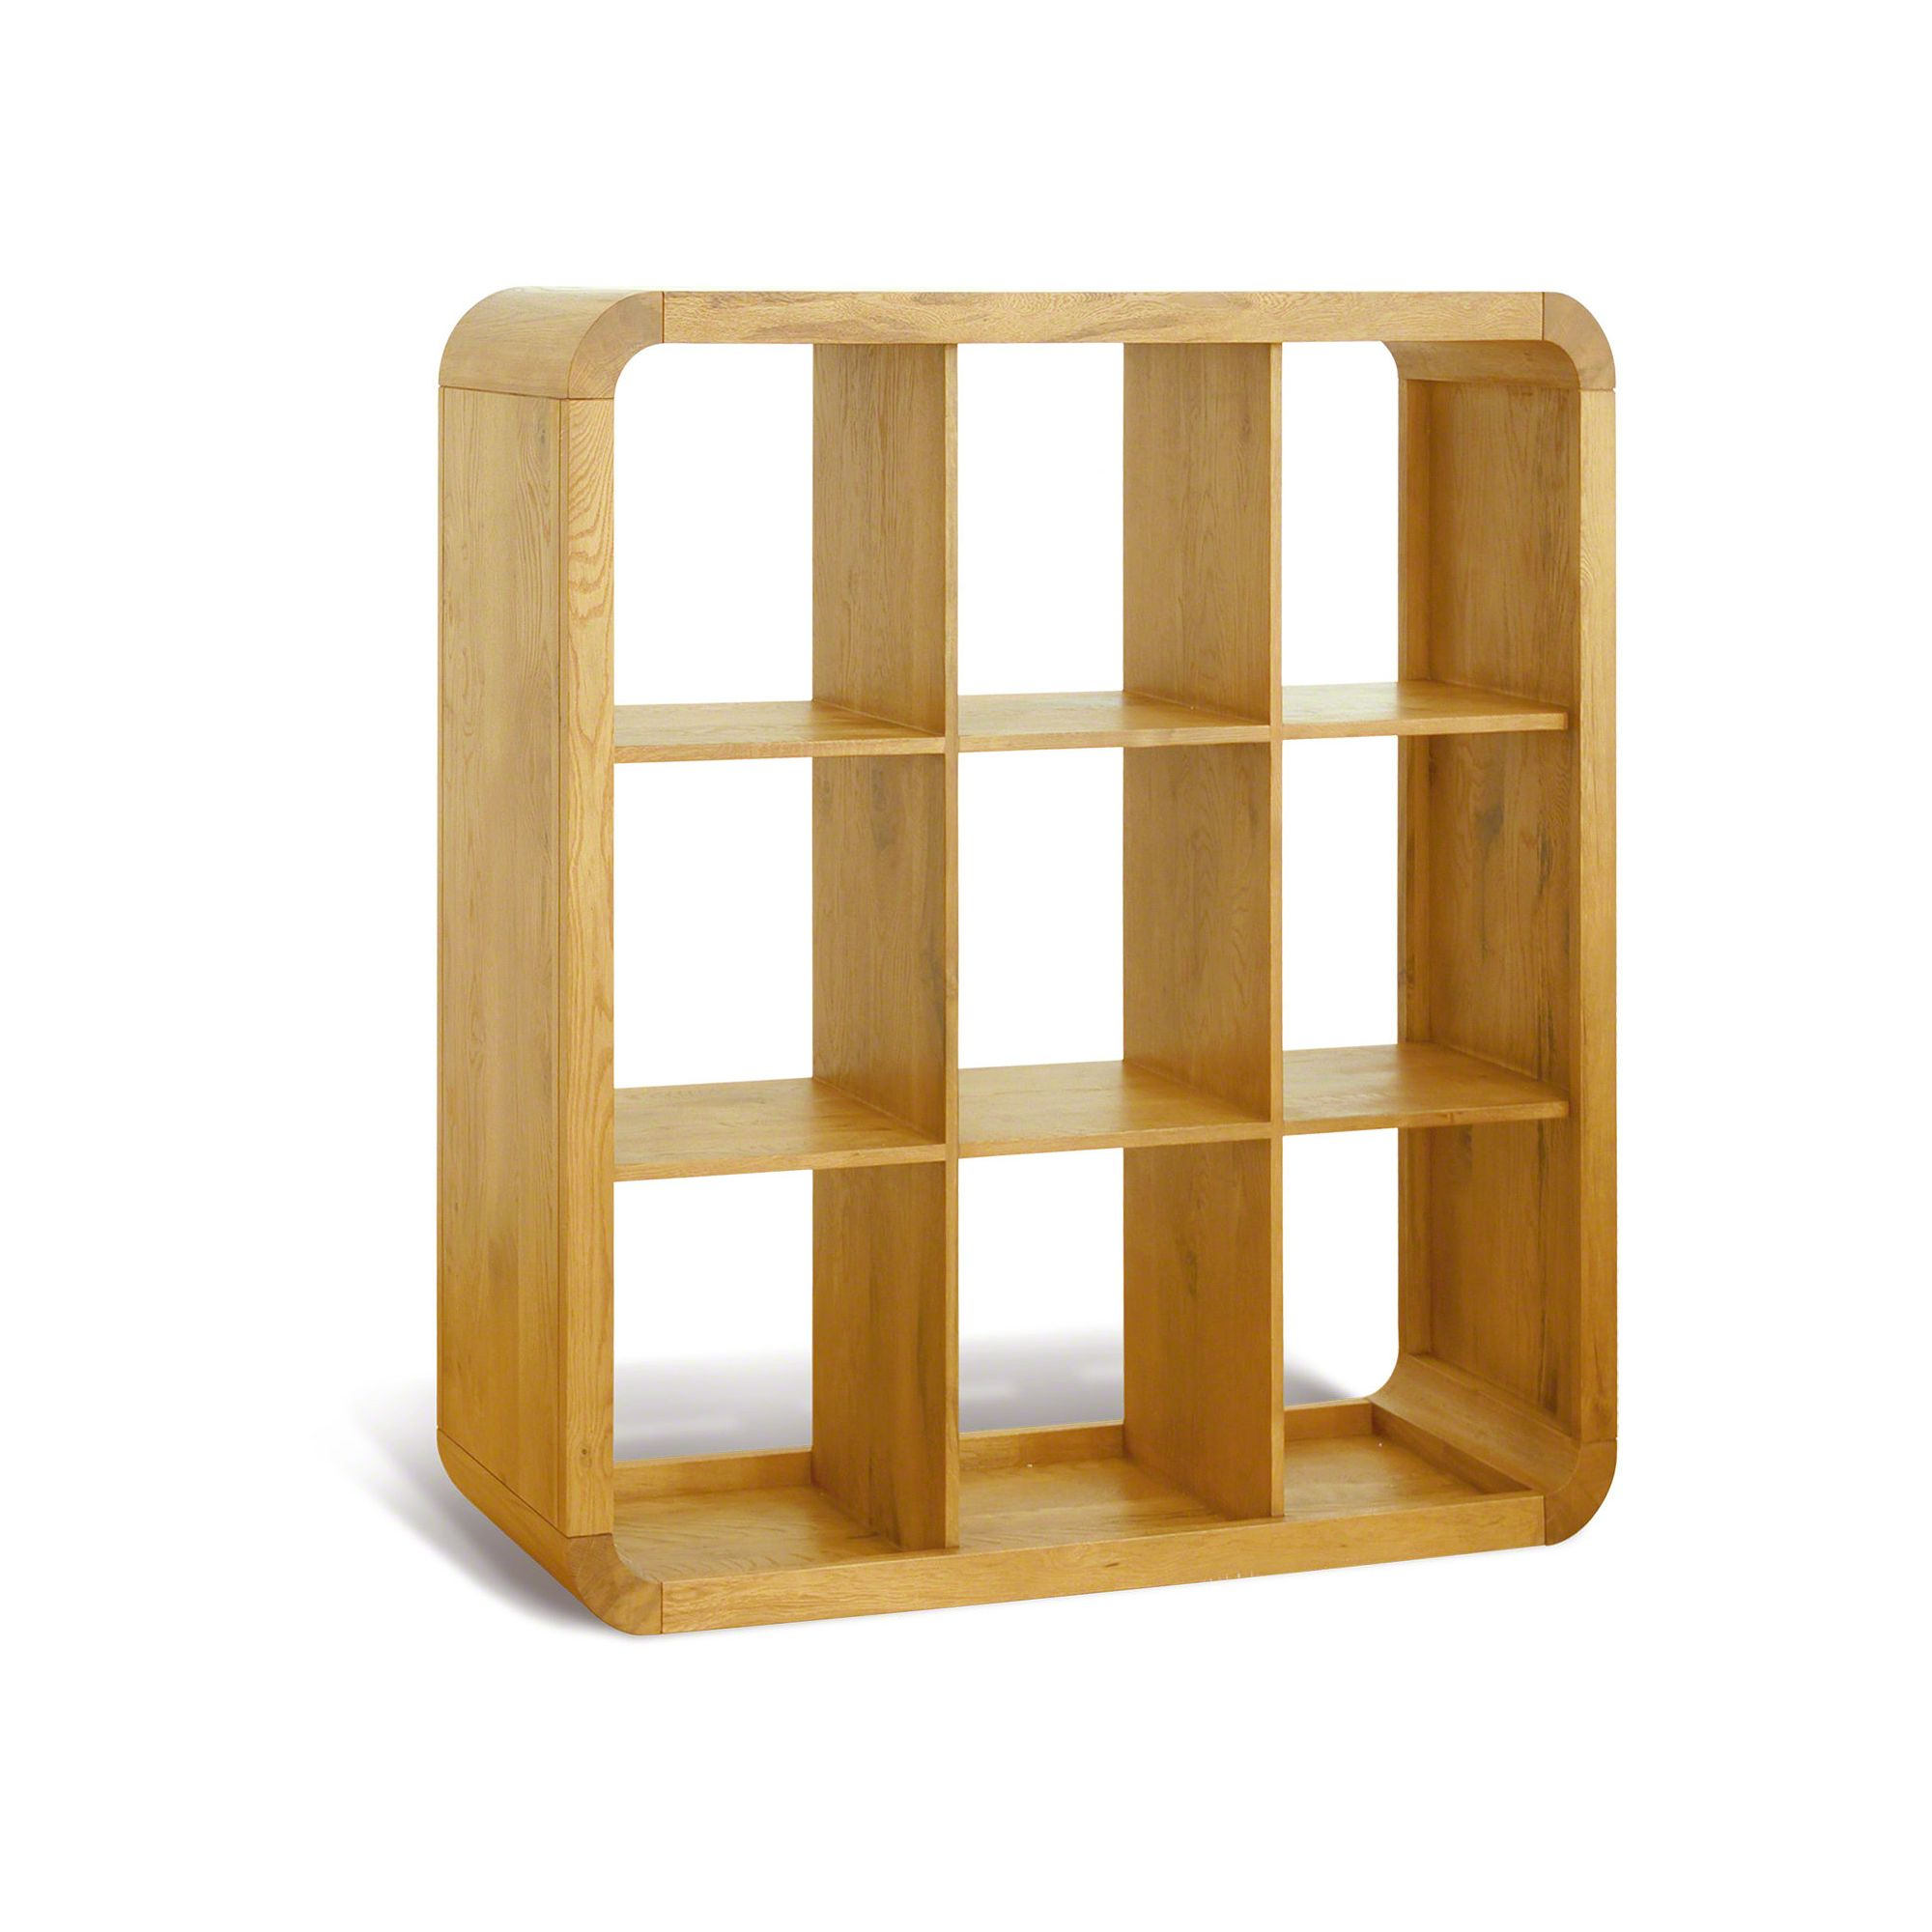 Oceans Apart Cadence Oak Living 9 Hole Shelf Unit at Tesco Direct